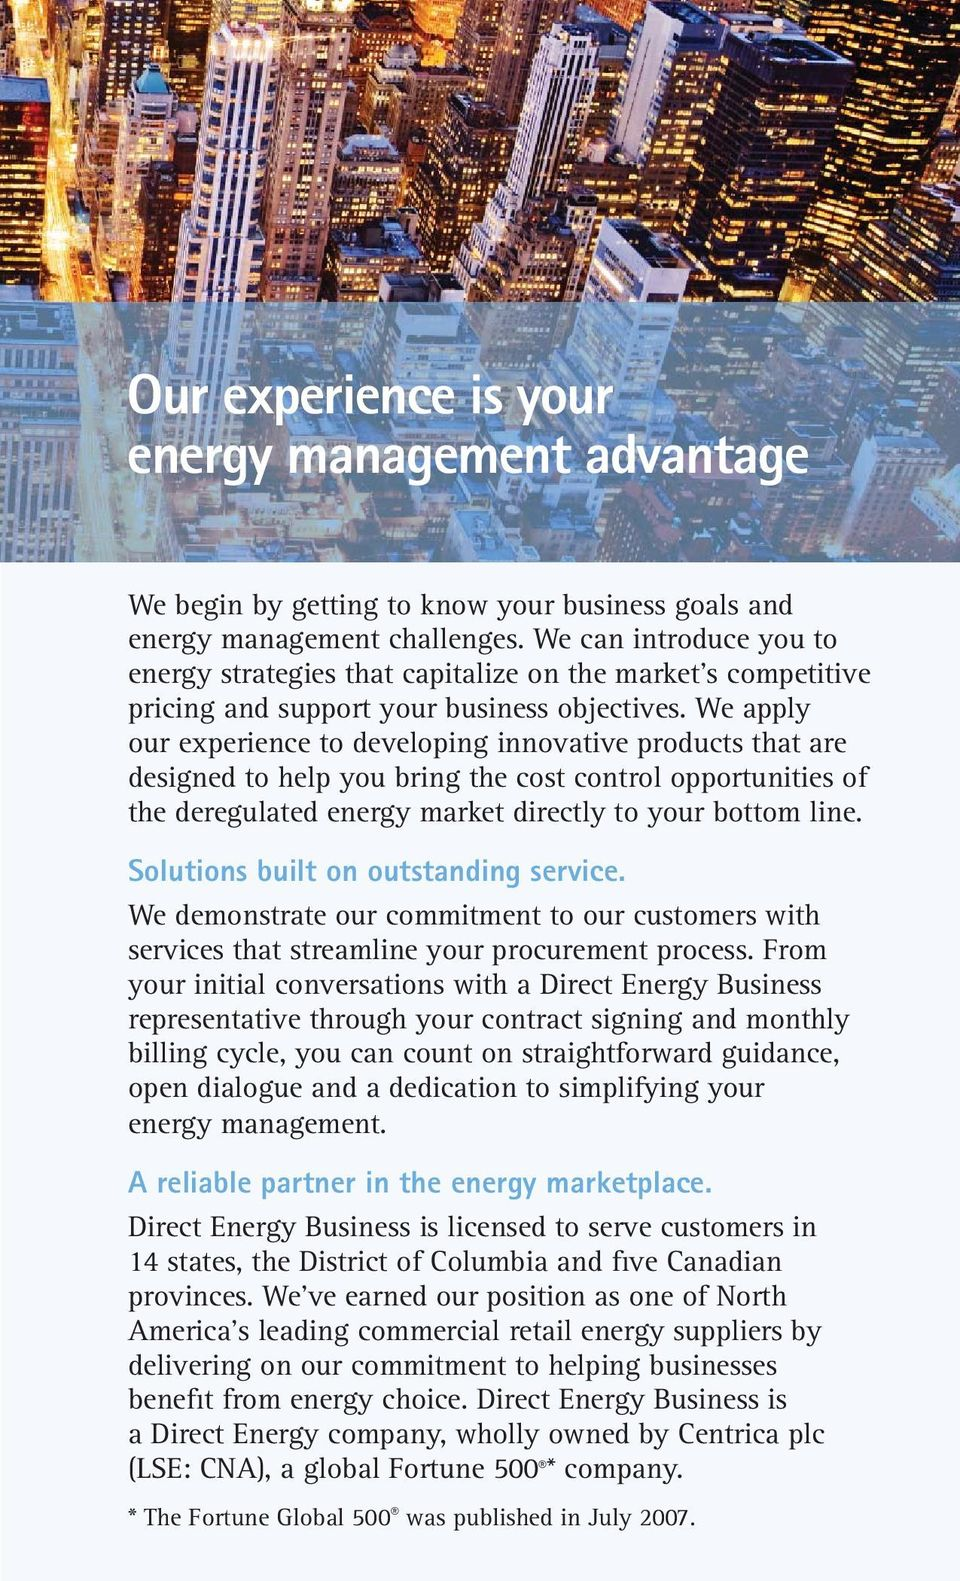 We apply our experience to developing innovative products that are designed to help you bring the cost control opportunities of the deregulated energy market directly to your bottom line.